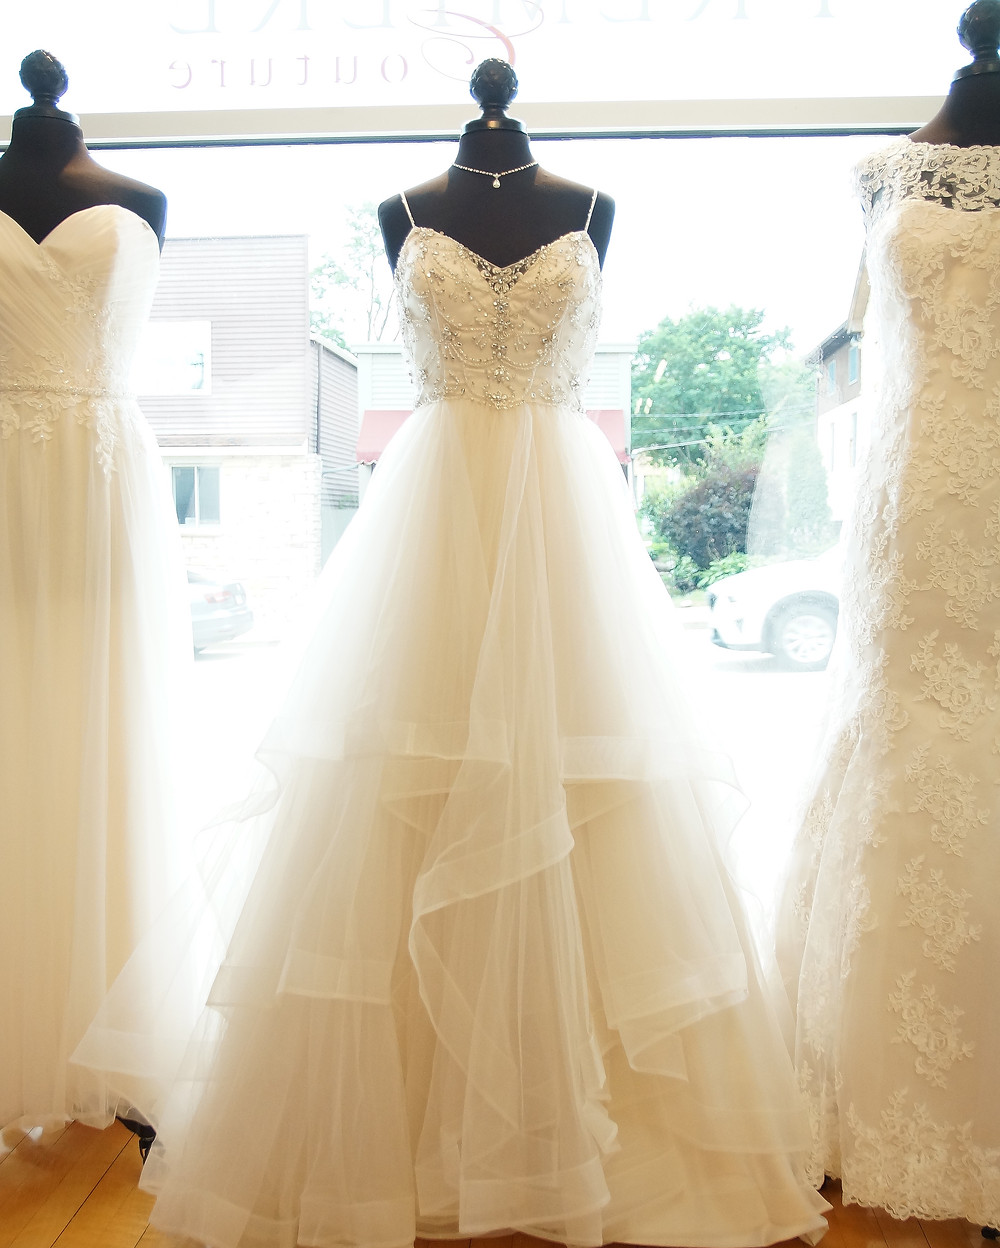 PC Squared is Premiere Couture's private collection of bridal gowns